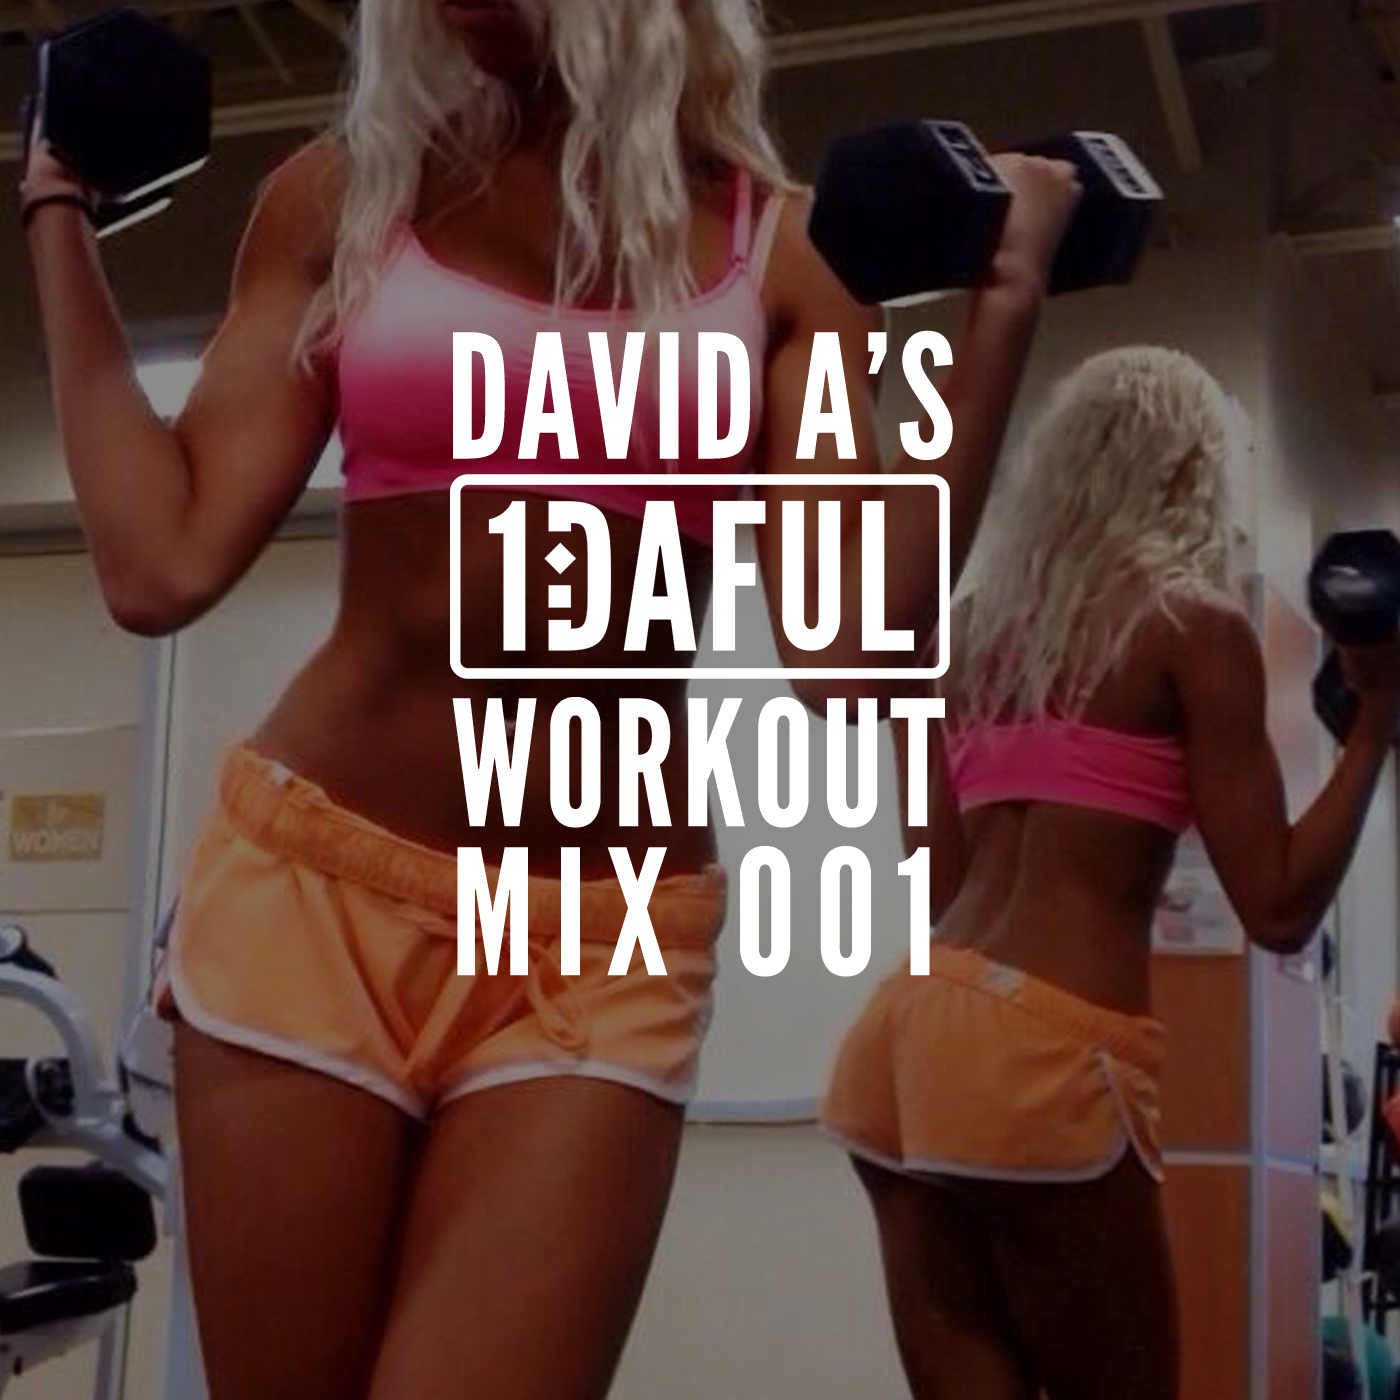 David A's 1DAFUL Workout Mix